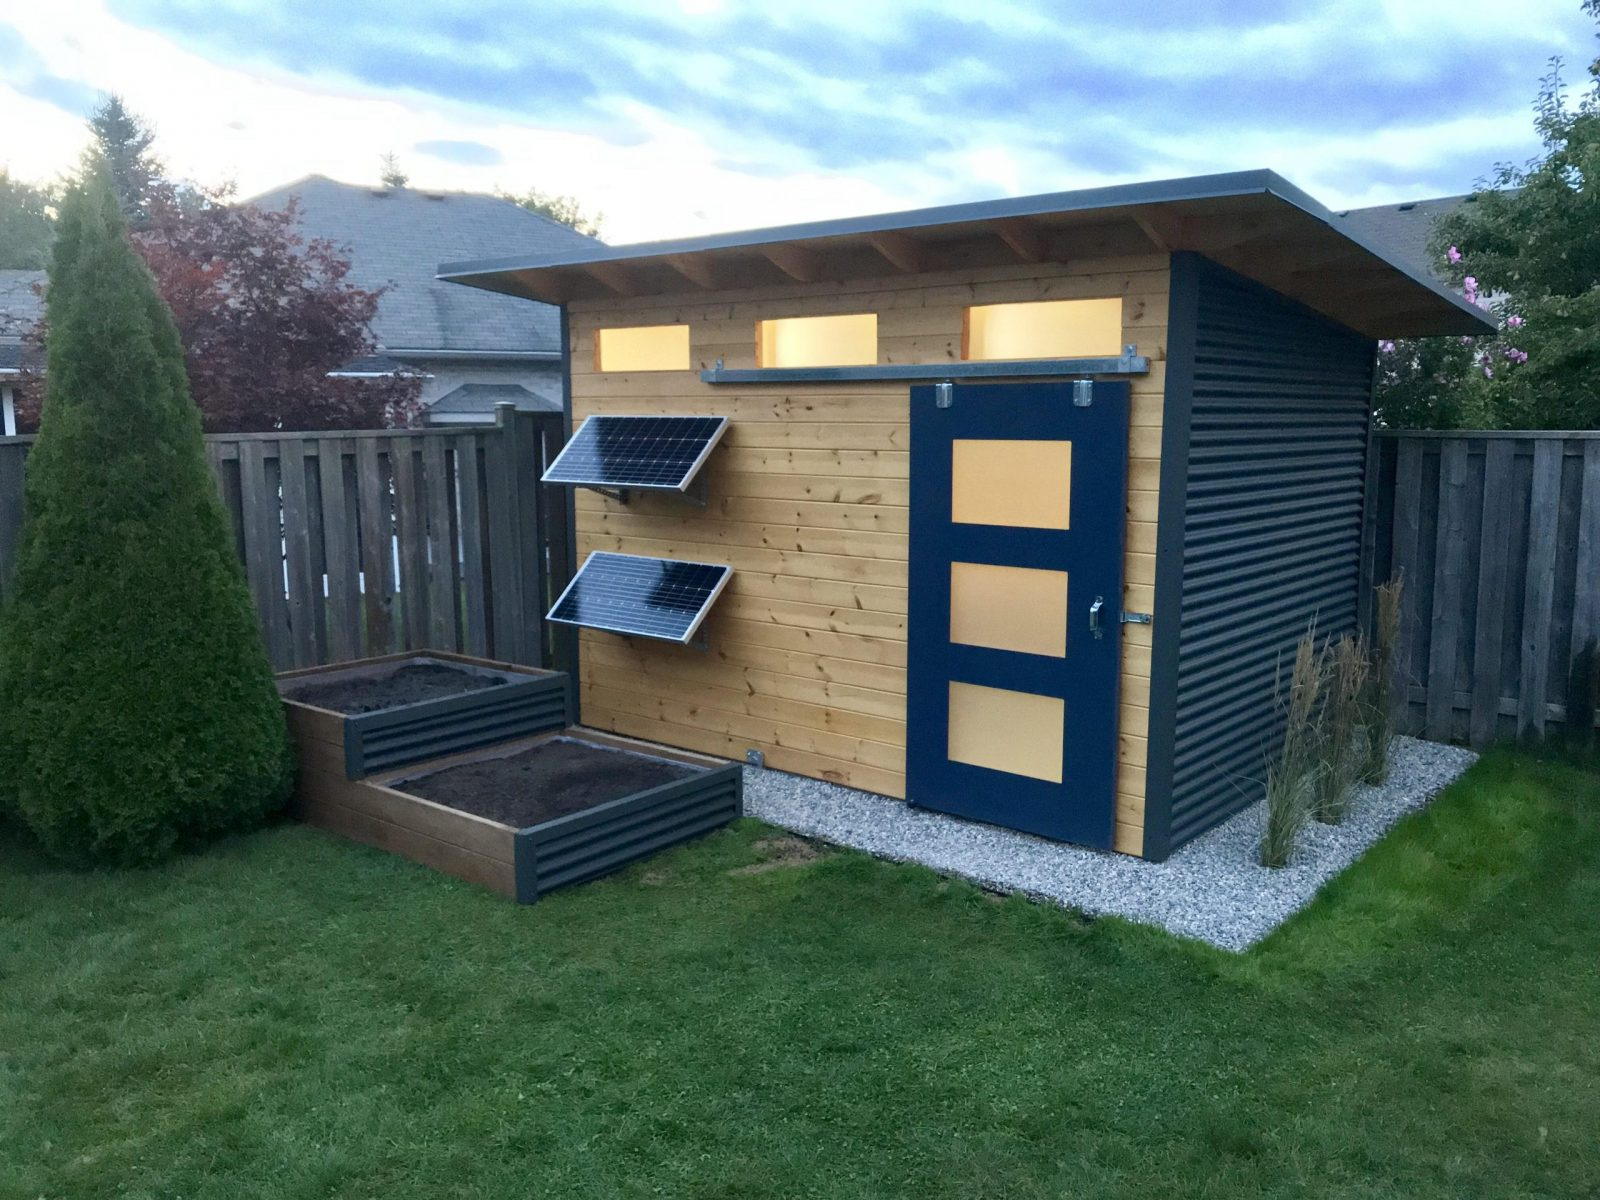 12' x 8' Advanced Storage Shed with Clear-coated Pine and Graphite Gray Steel